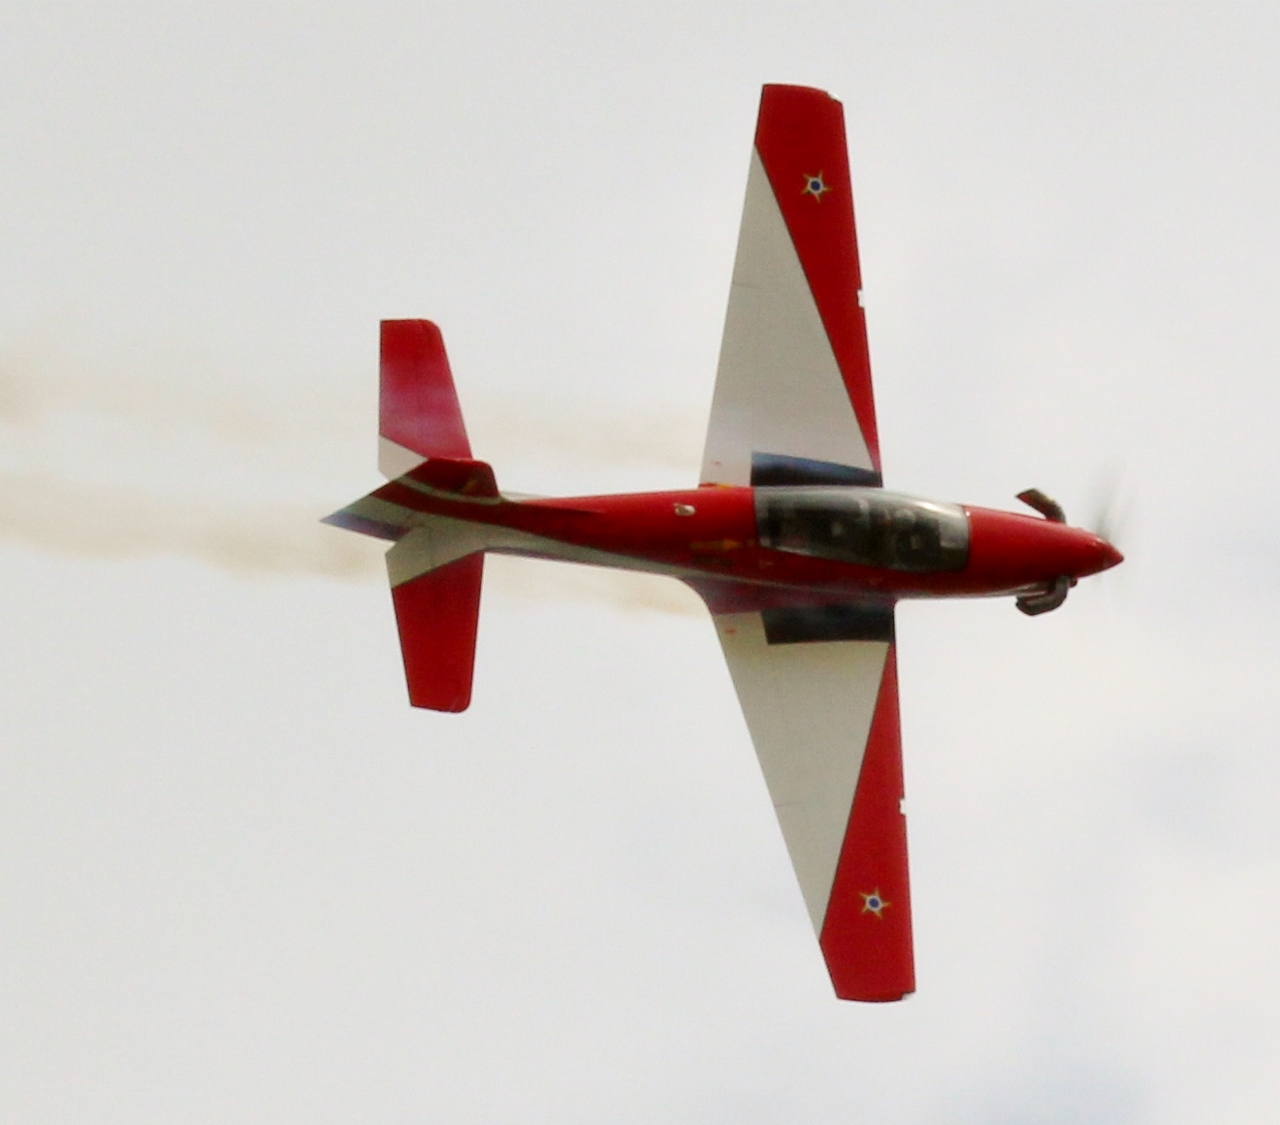 Master flying a Snap to Inverted